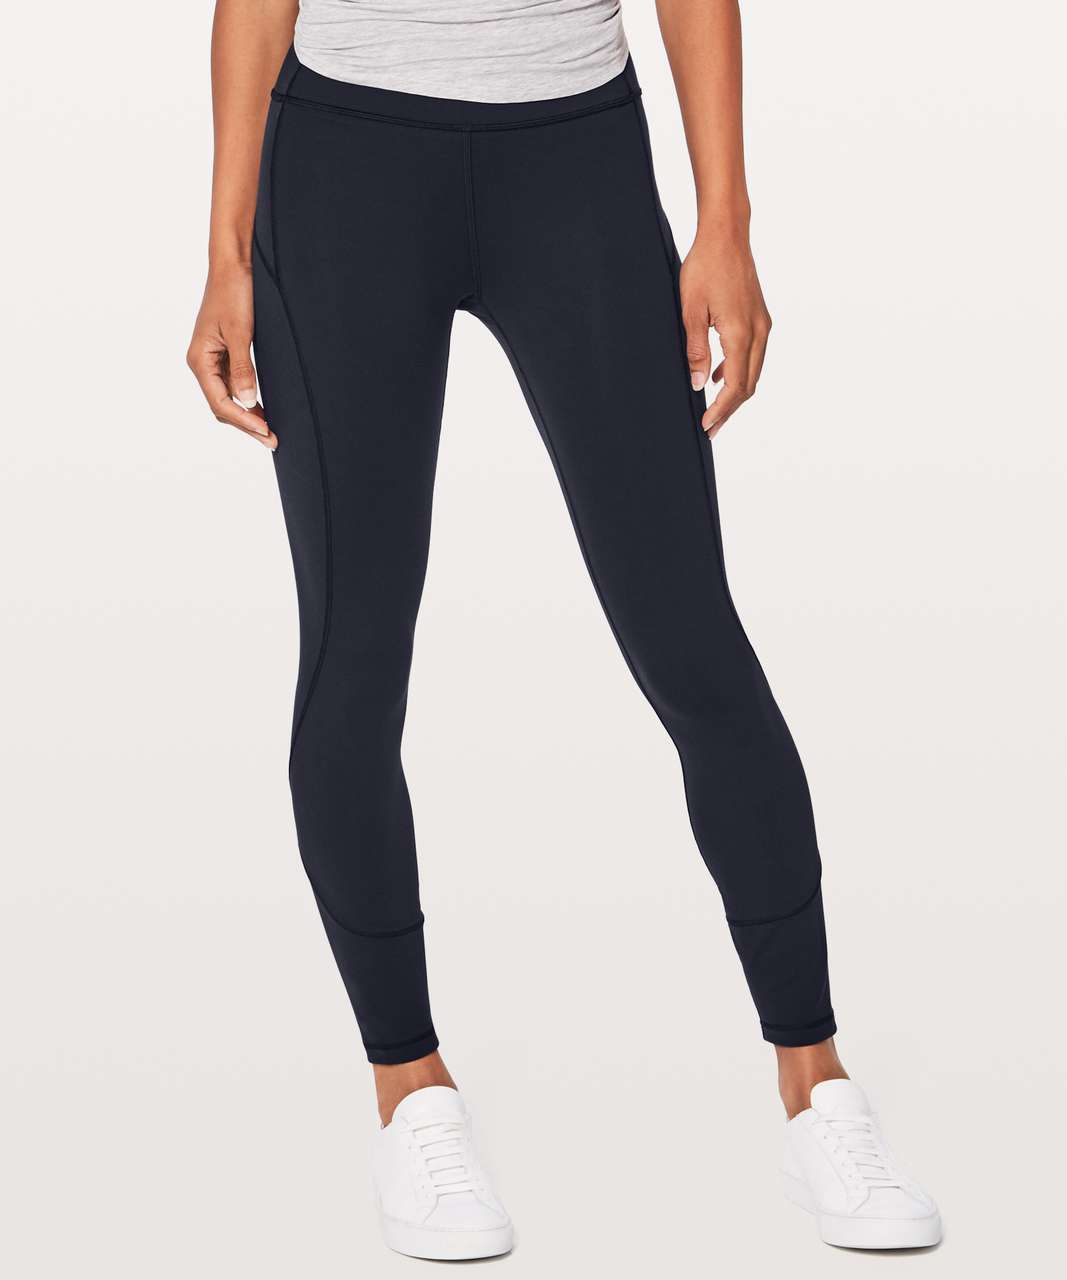 "Lululemon In Movement 7/8 Tight *Everlux 25"" - Midnight Navy"